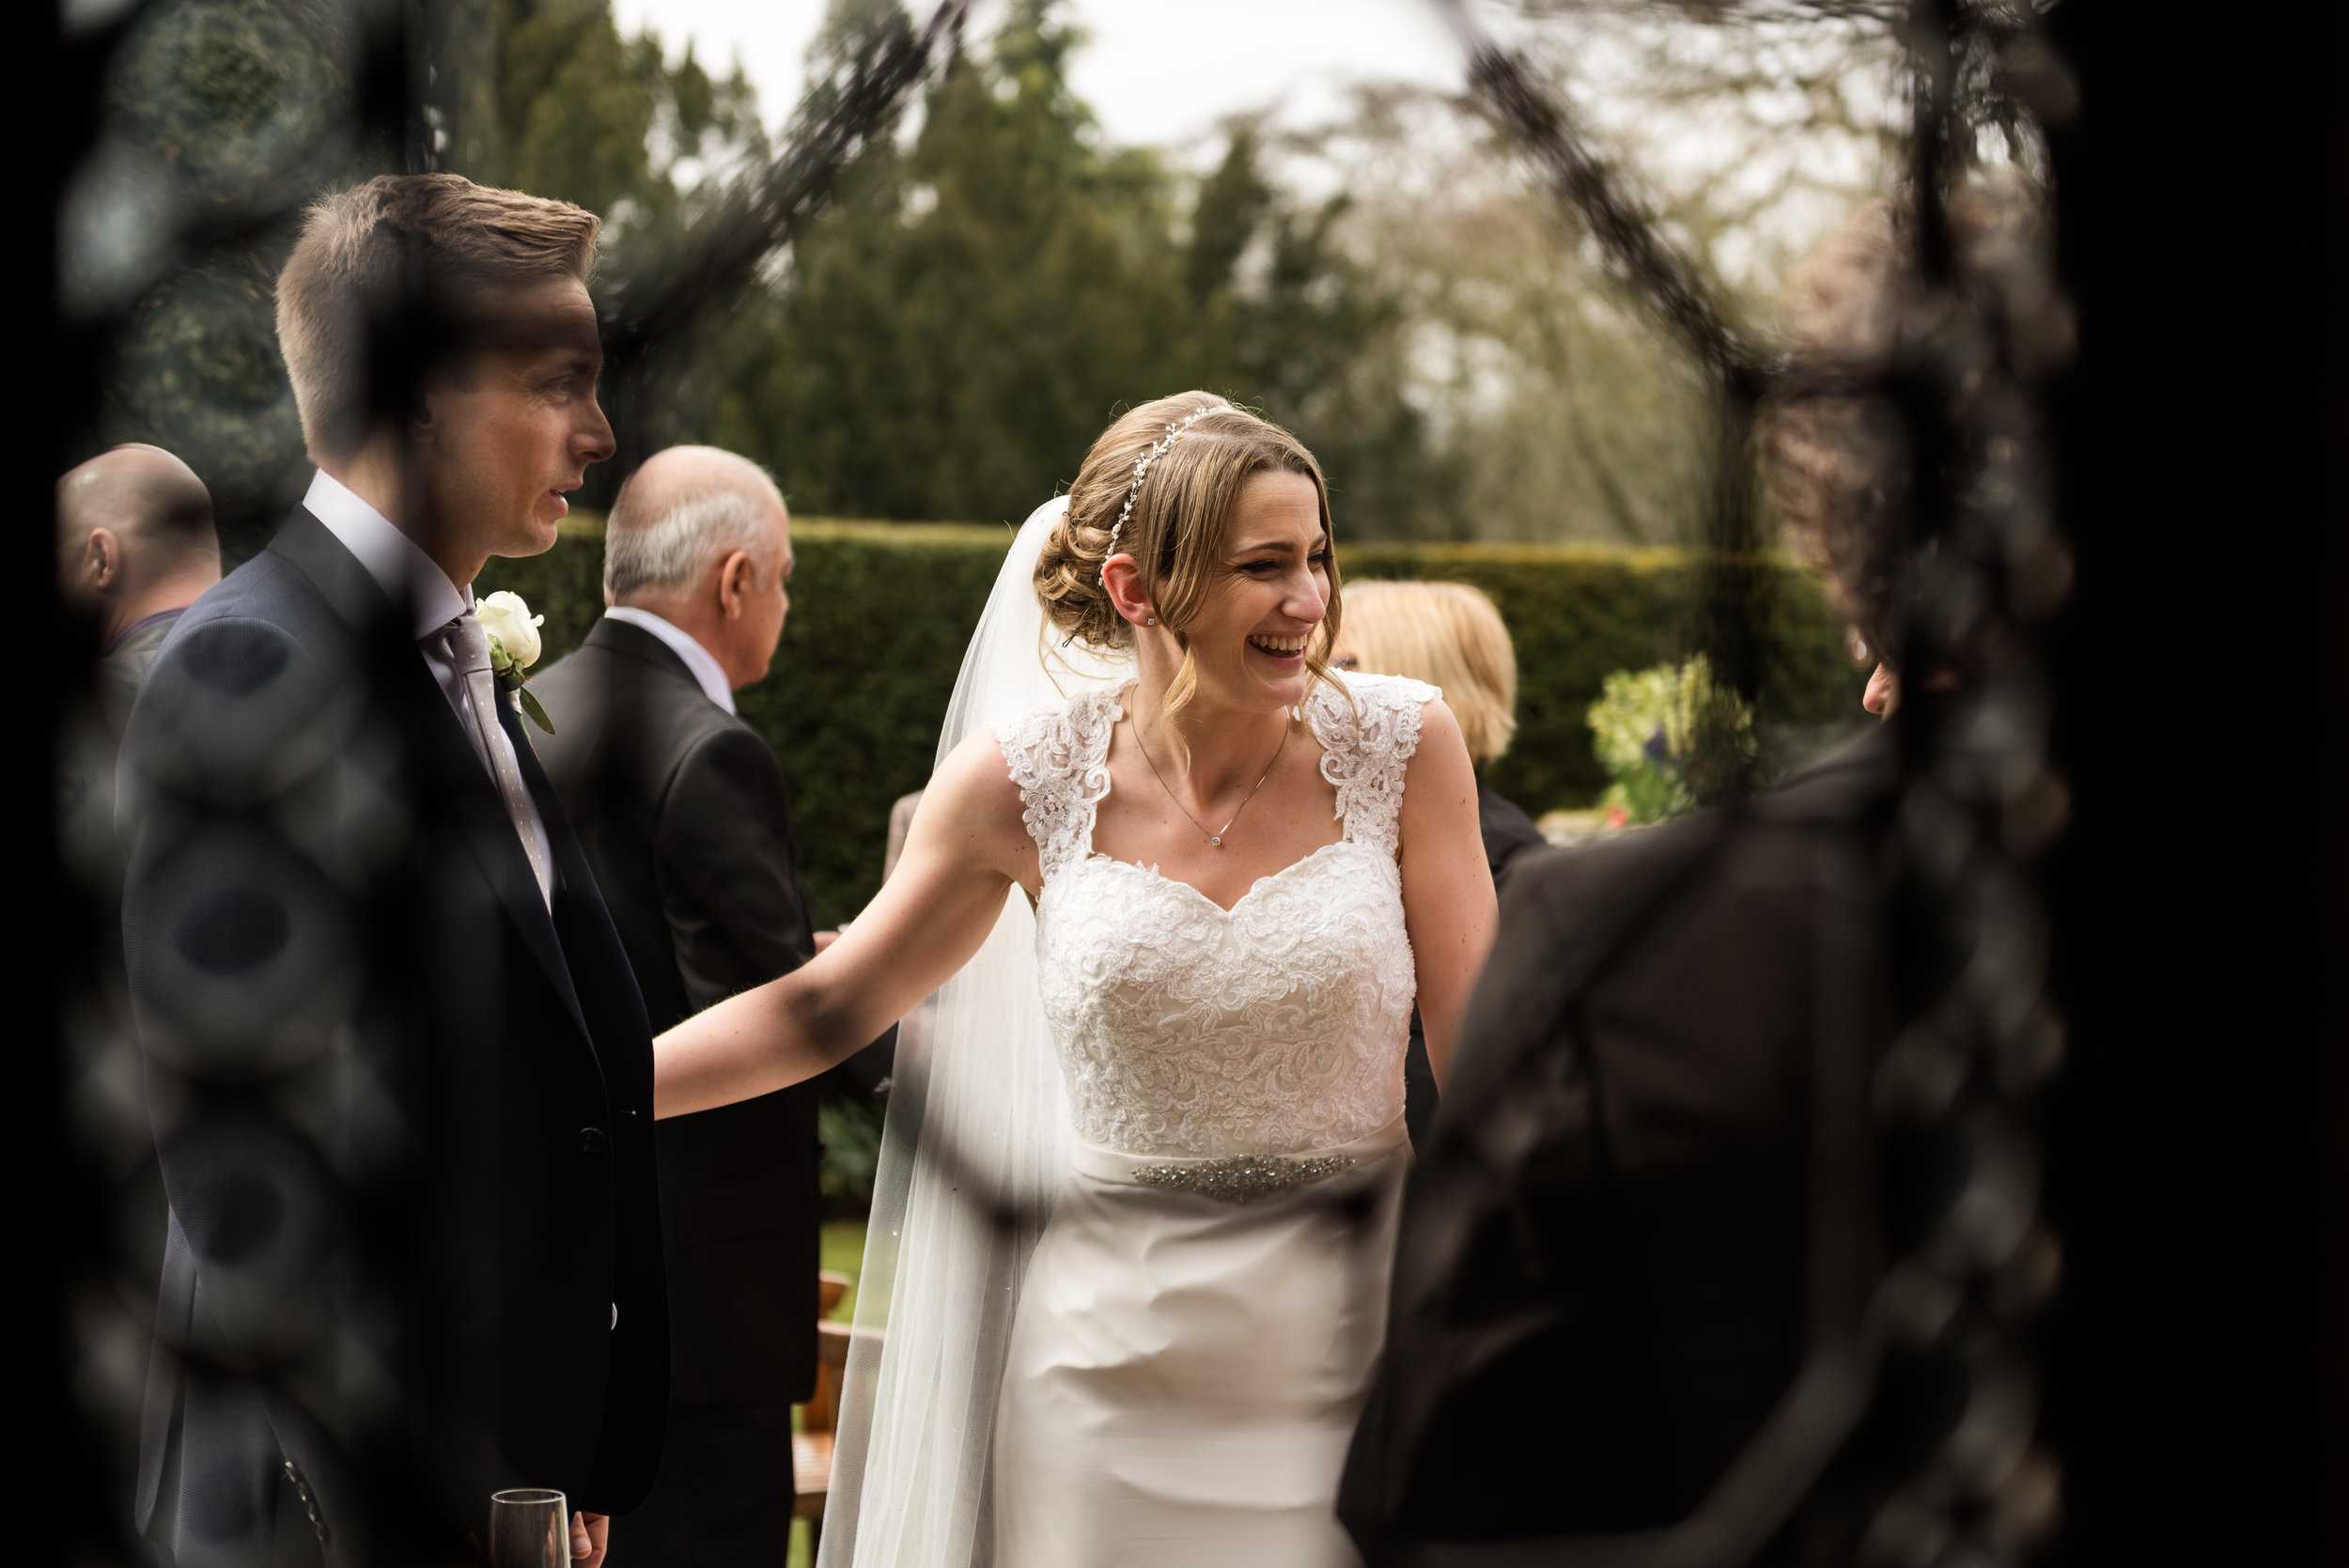 Birmingham Documentary Wedding Photography at New Hall, Sutton Coldfield Turkish Red Candid Reportage - Jenny Harper-44.jpg